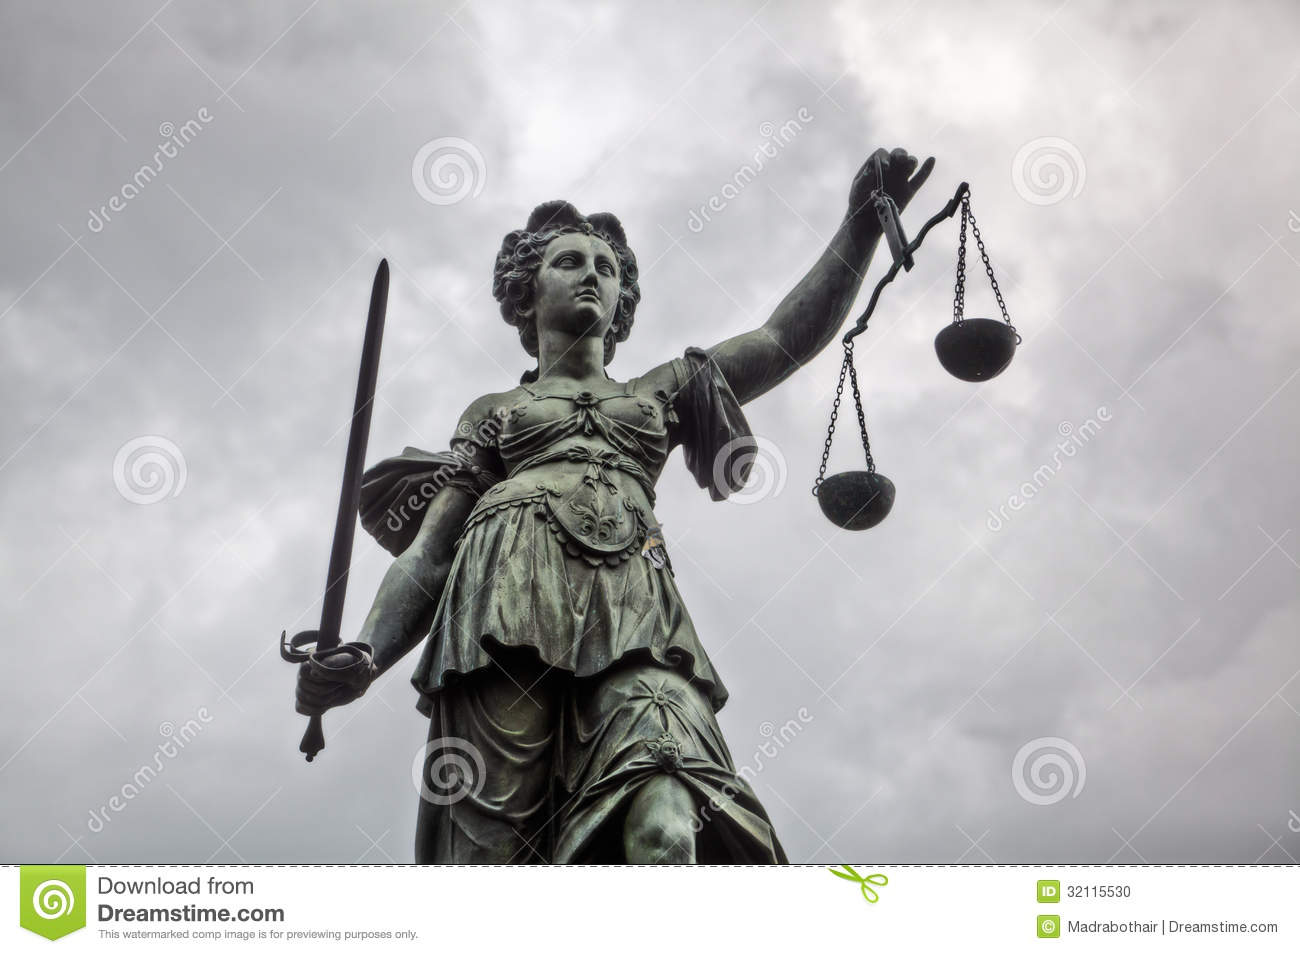 statue justitia stock photo image of cloudy frankfurt 32115530. Black Bedroom Furniture Sets. Home Design Ideas